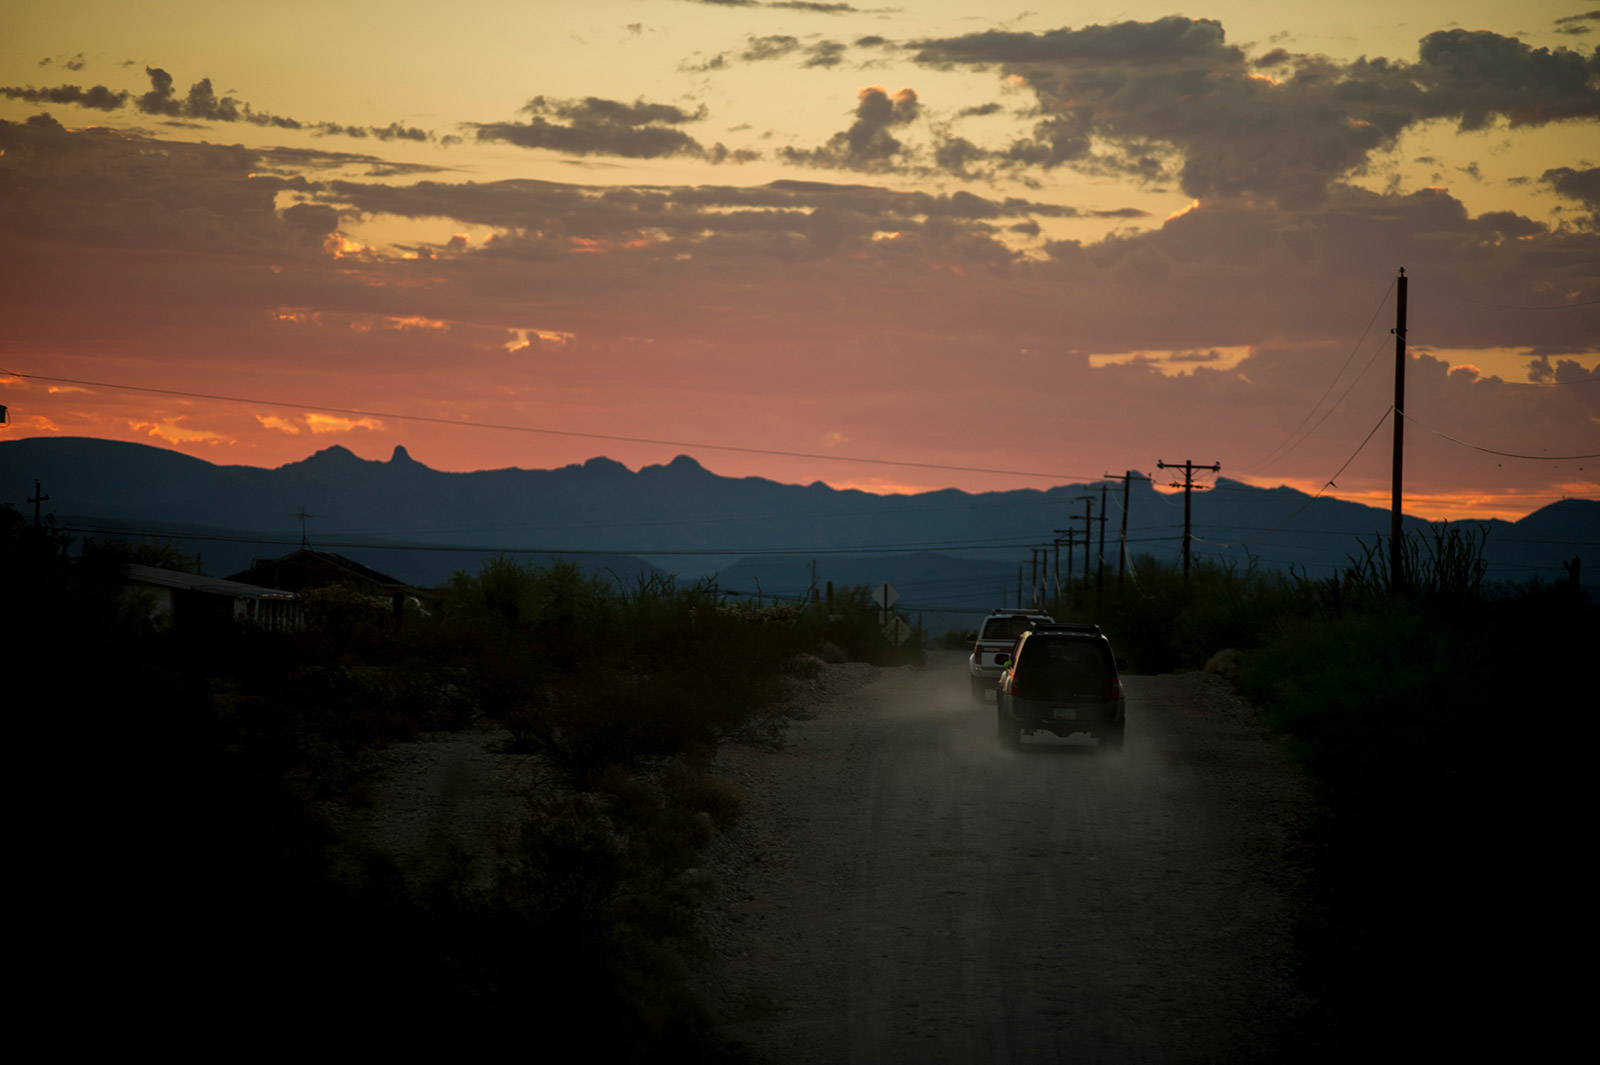 Trucks and SUVs leave a camp outside Ajo, Arizona, on Aug. 26, 2017, for a drive to Organ Pipe Cactus National Monument along the U.S.-Mexico border where the occupants will search on foot for missing migrants. <em>(Brandon Quester/inewsource)</em>